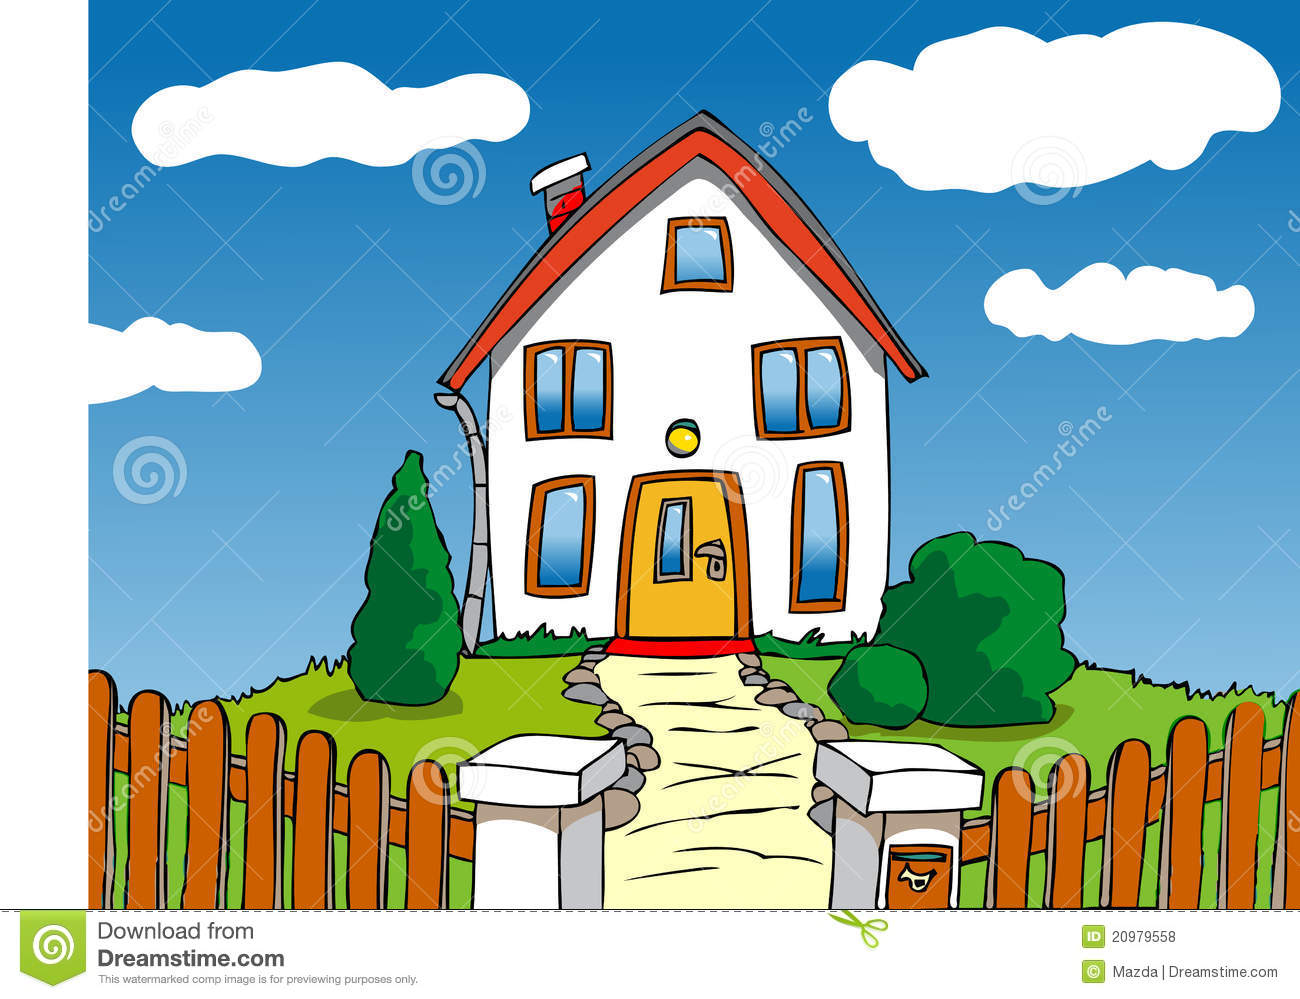 Cartoon house royalty free stock photos image 20979558 for Draw house online